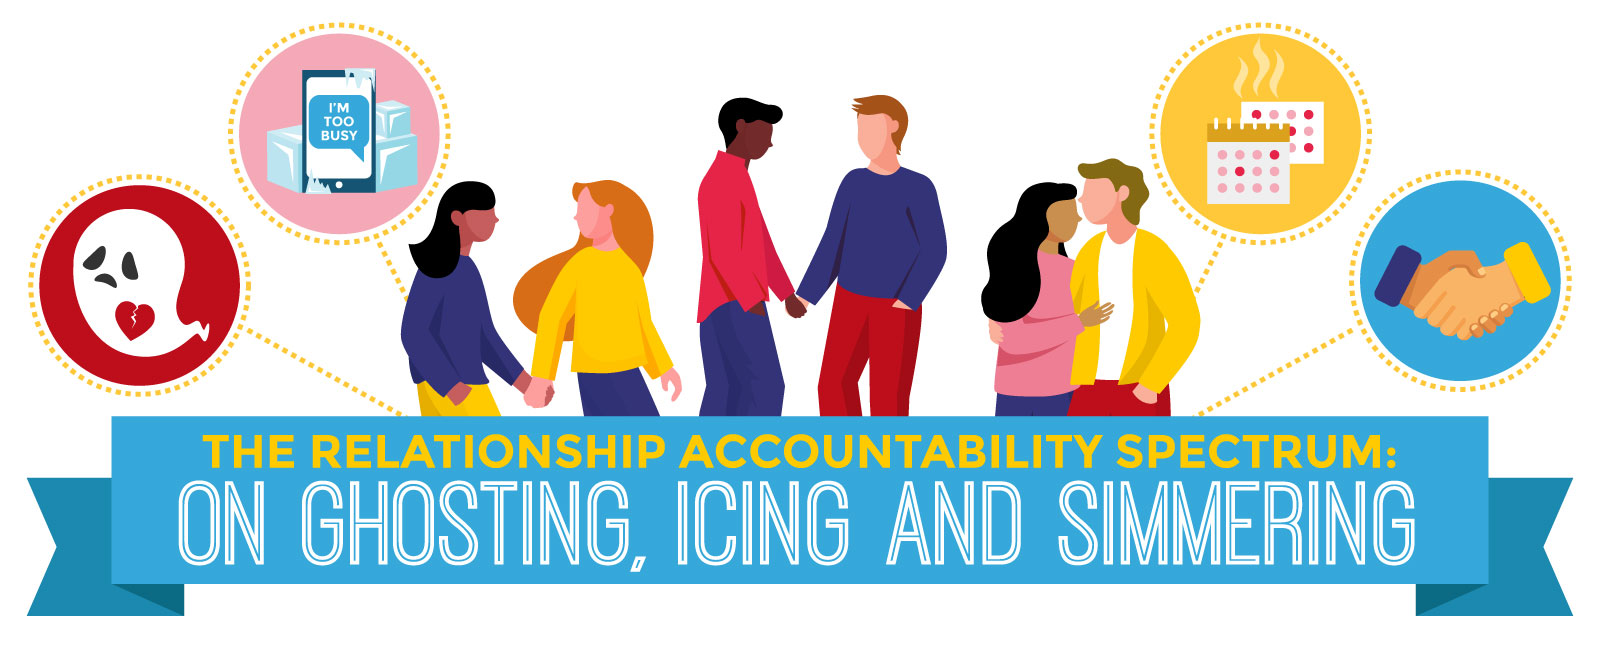 illlustration of the relationship accountability spectrum